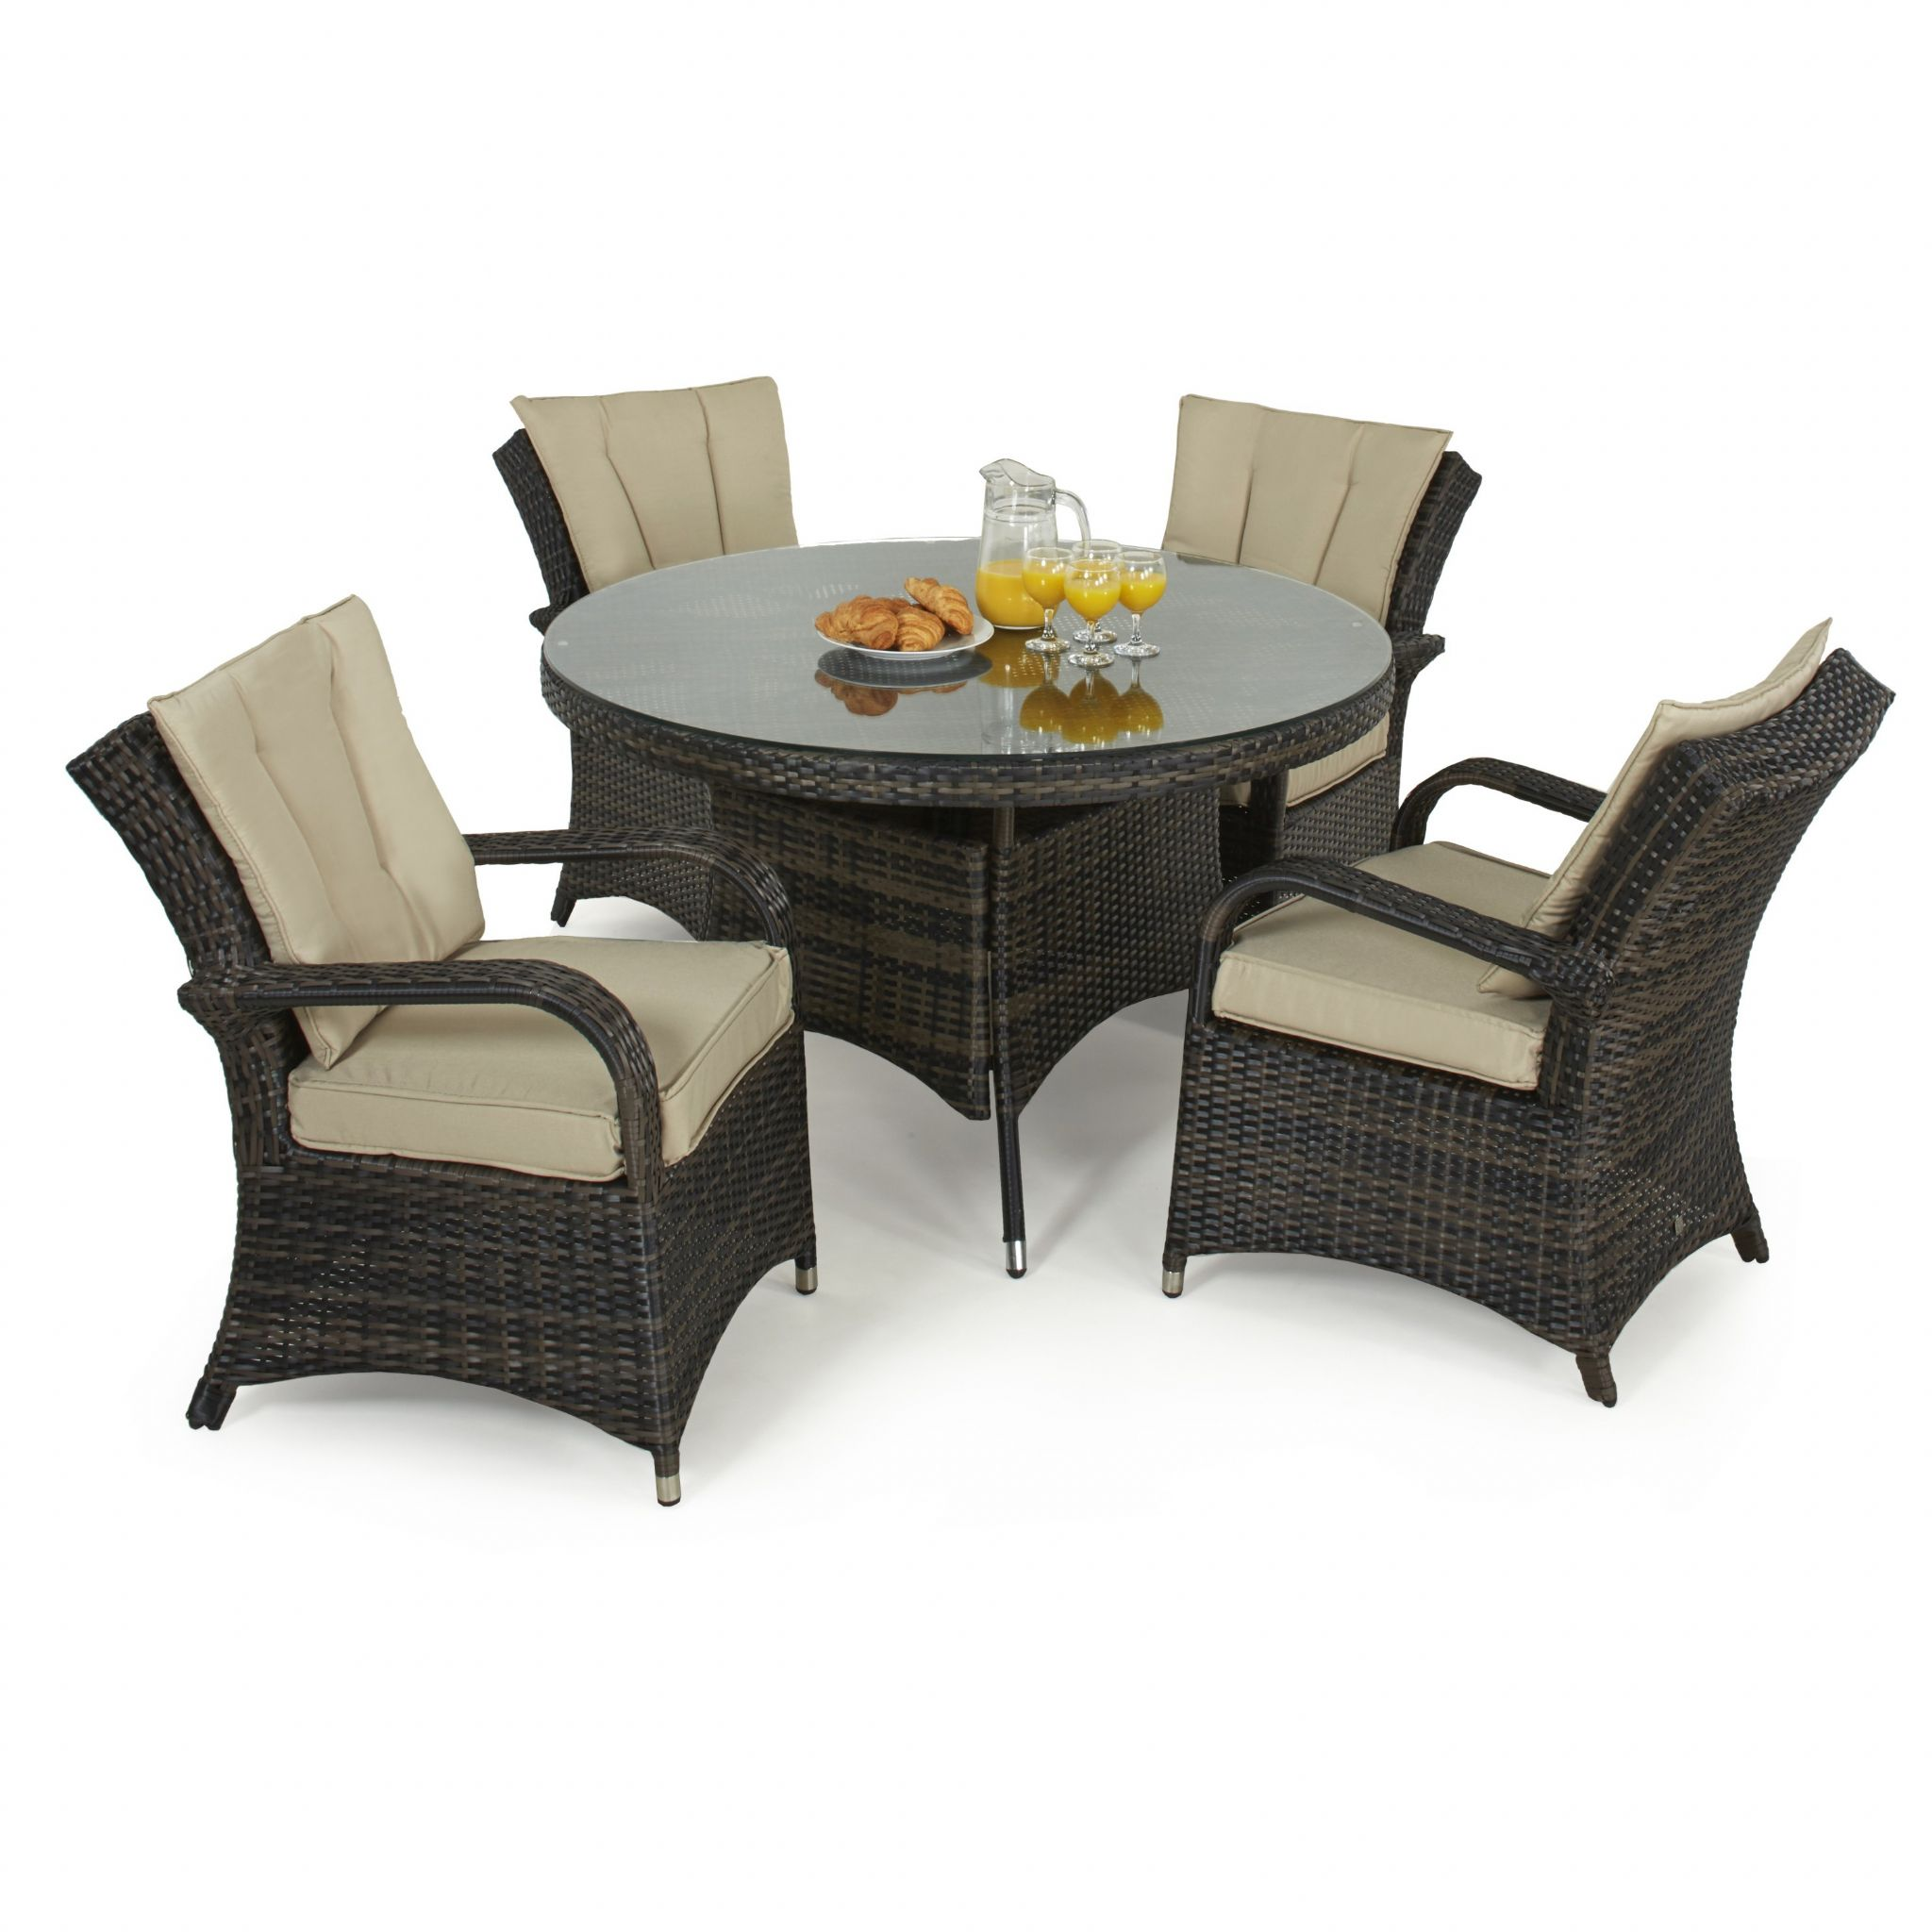 rattan furniture maze rattan 4 seat texas round dining garden furniture set - LTZNBYF